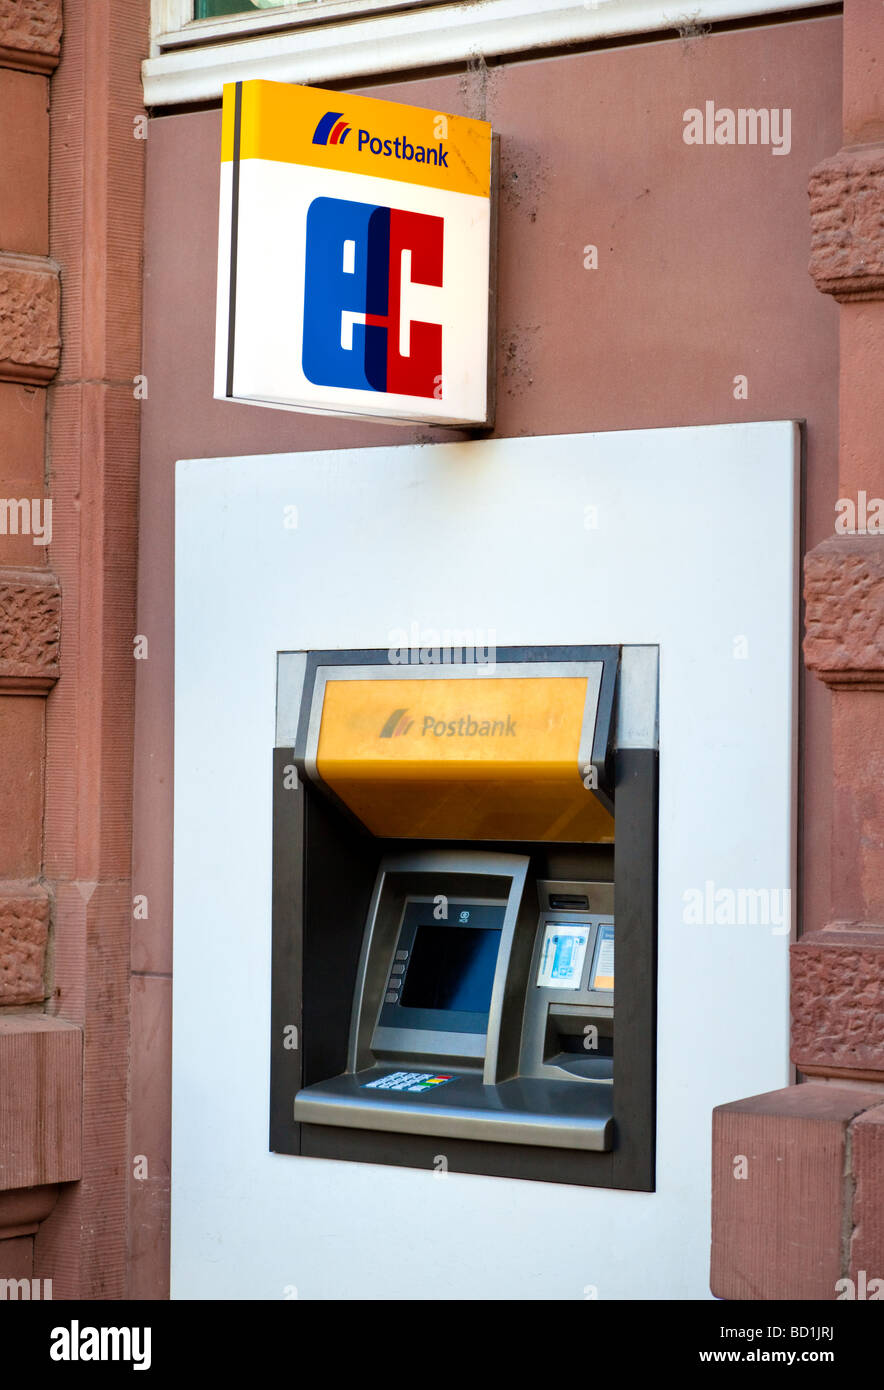 Cash machine ATM Postbank Allemagne Europe Photo Stock